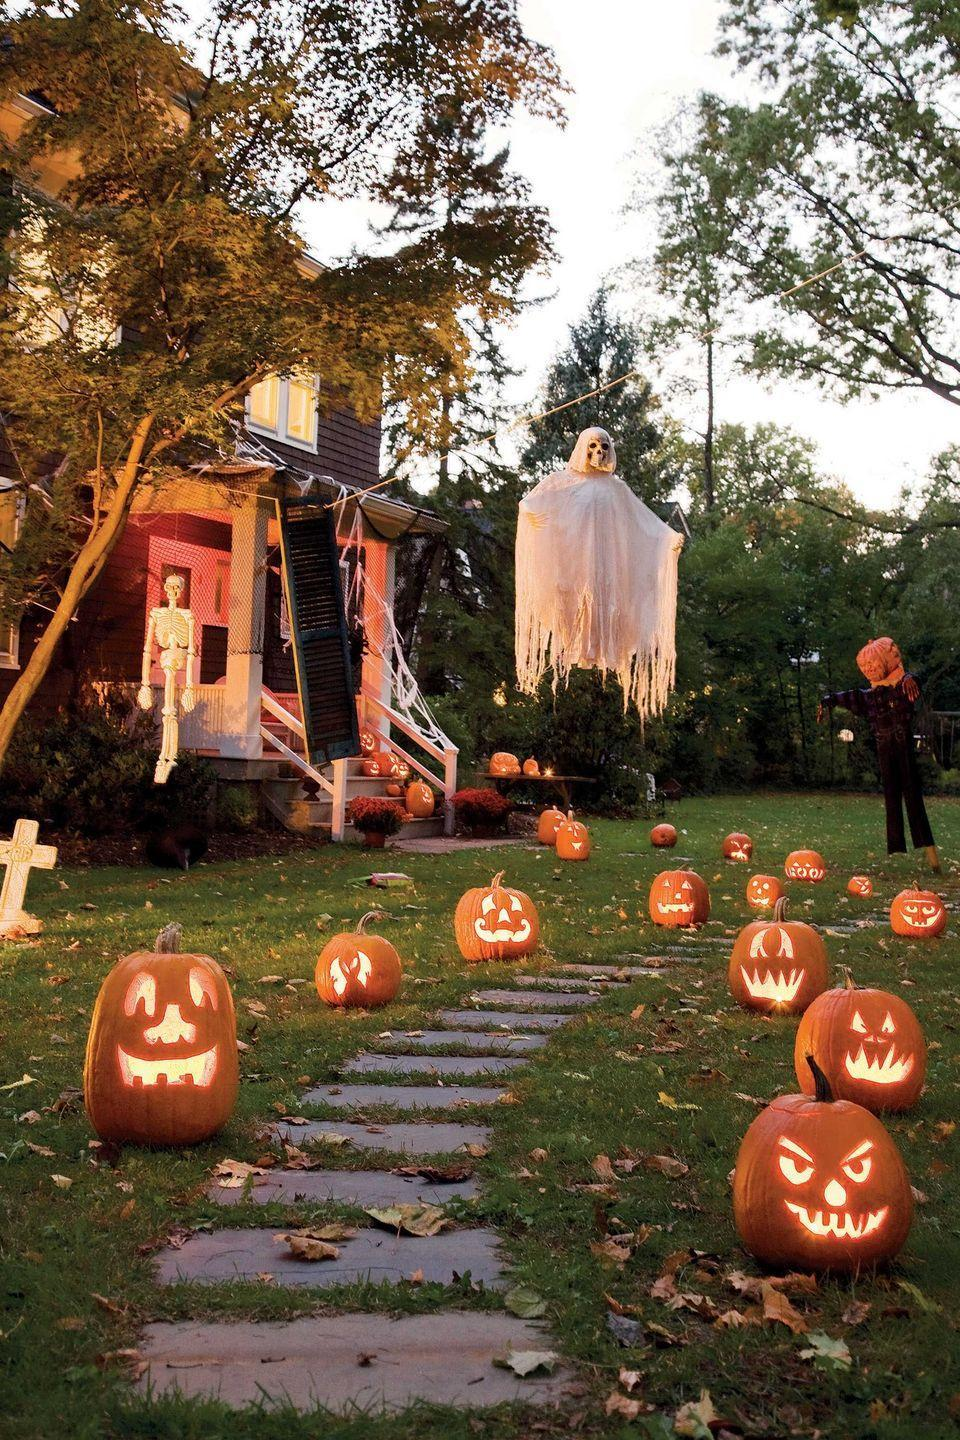 """<p>Hanging ghosts and skeletons greet trick or treaters as they make their way up the path.</p><p><strong>RELATED: </strong><a href=""""https://www.womansday.com/style/fashion/g490/20-clever-last-minute-costume-ideas/"""" rel=""""nofollow noopener"""" target=""""_blank"""" data-ylk=""""slk:Last-Minute Halloween Costume Ideas You Can Whip Up at Home"""" class=""""link rapid-noclick-resp"""">Last-Minute Halloween Costume Ideas You Can Whip Up at Home</a></p>"""